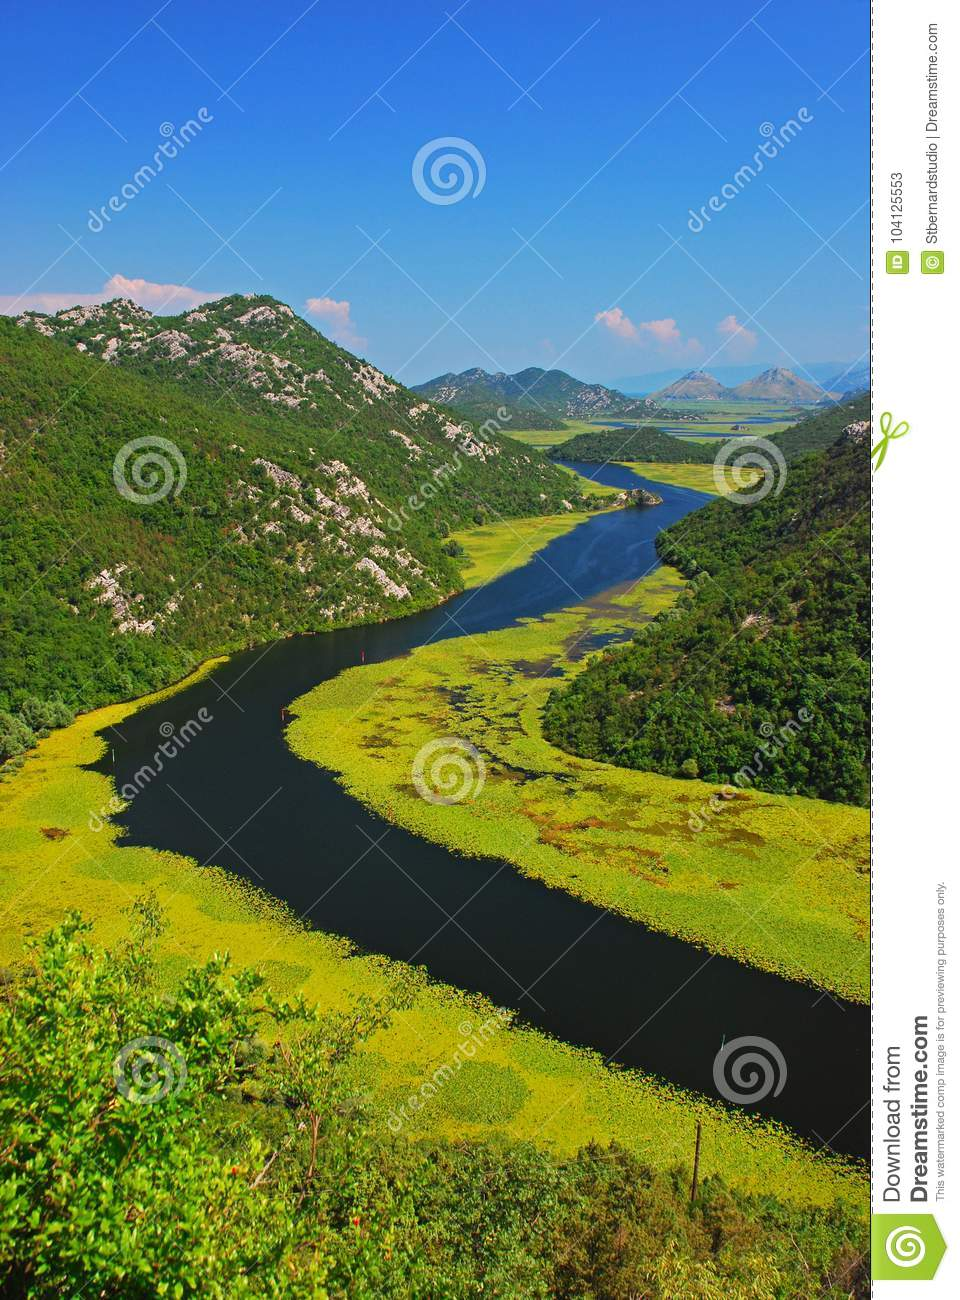 Montenegro - The River Curve at Lake Skadar nearby Rijeka Crnojevića